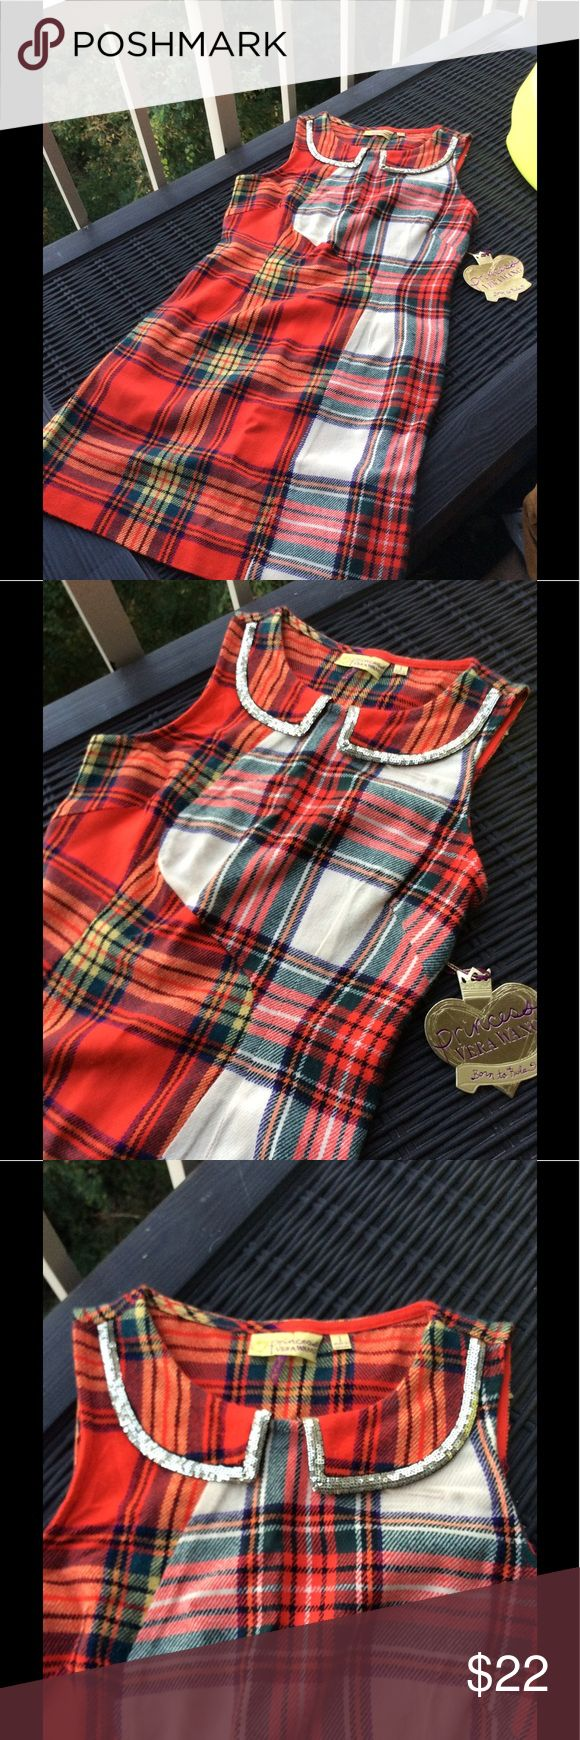 Princess 👸 Vera Wang Tartan Dress NWT Princess Vera, size 1, Tartan dress with a Peter Pan glitterered collar.  Size is in Vera Wang-fit. Please review measurements for actual fit. More like a 6X-8. Check measurements.  New wth tags. Vera Wang Dresses Casual